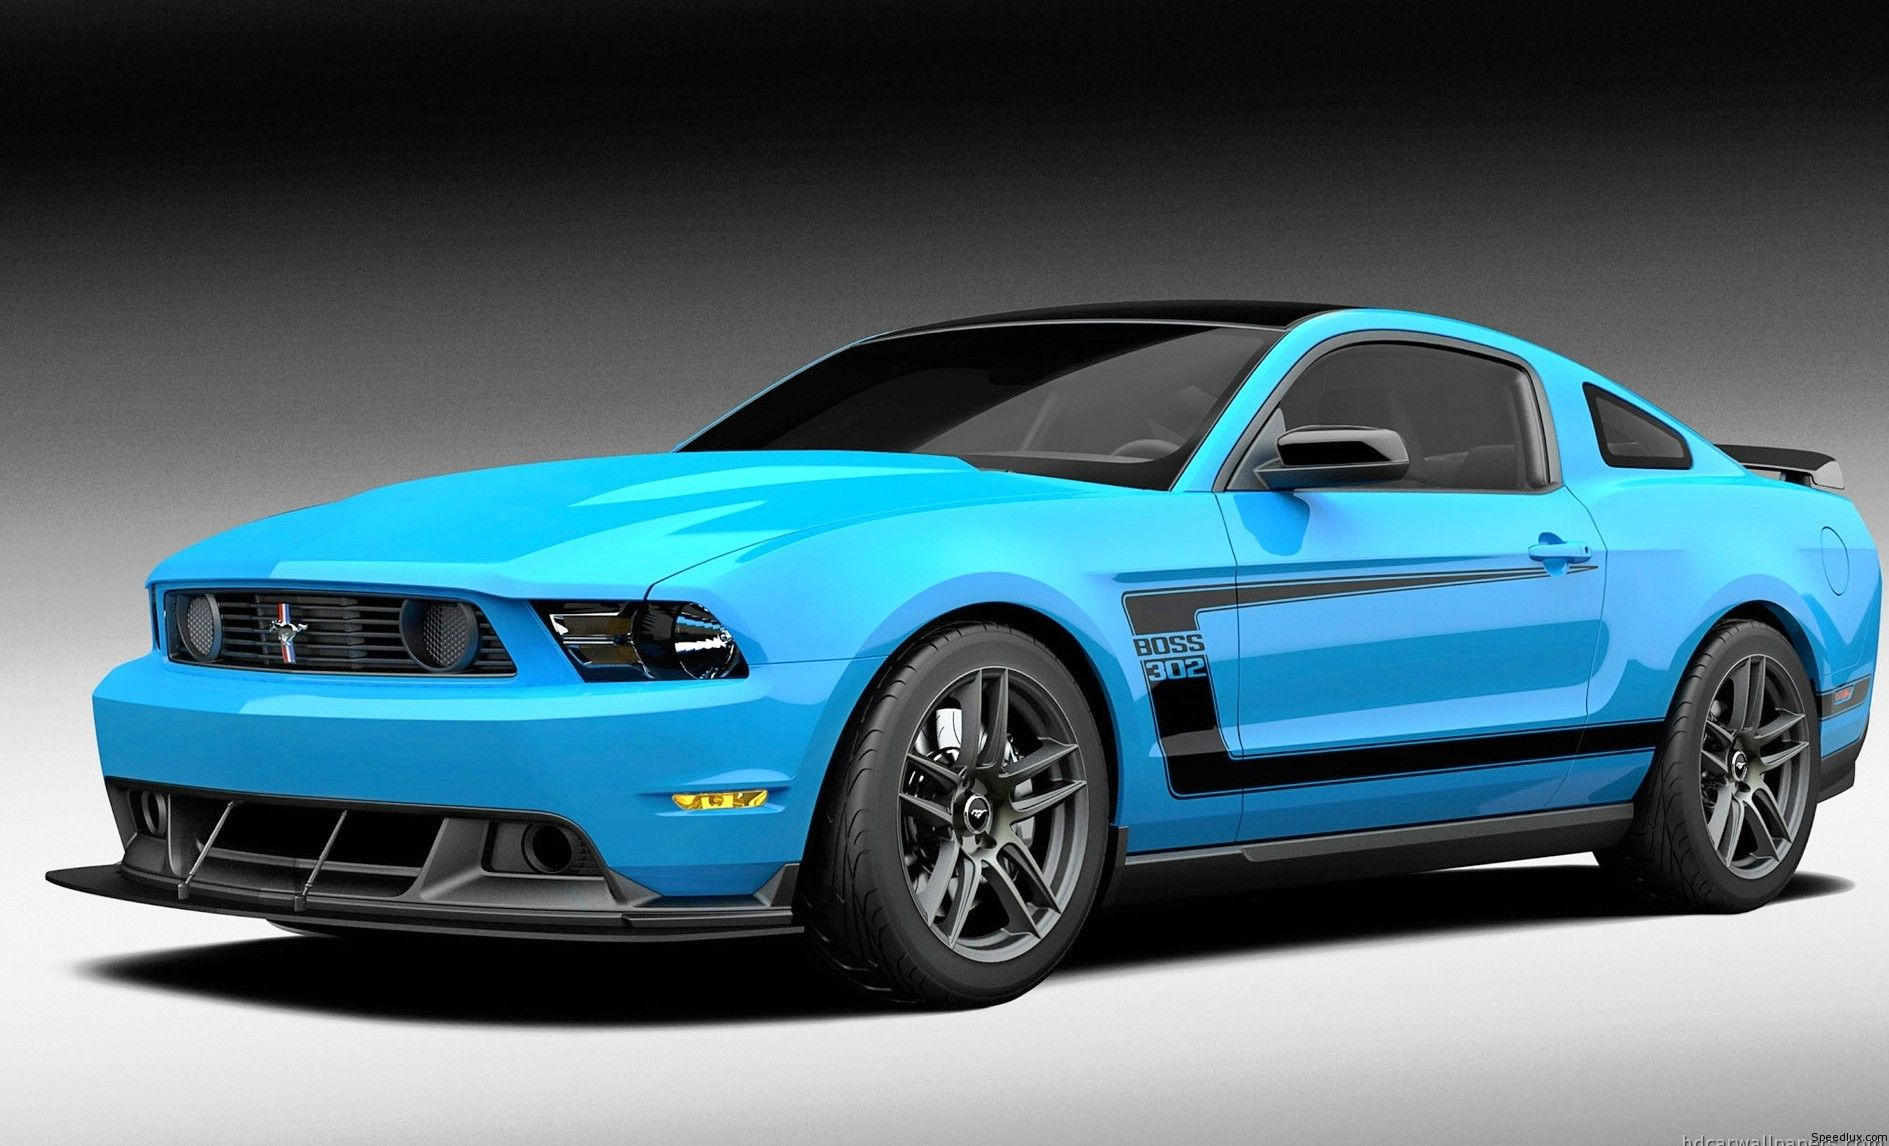 2015 Ford Mustang Free High Quality Wallpaper 2964 Ford Wallpaper